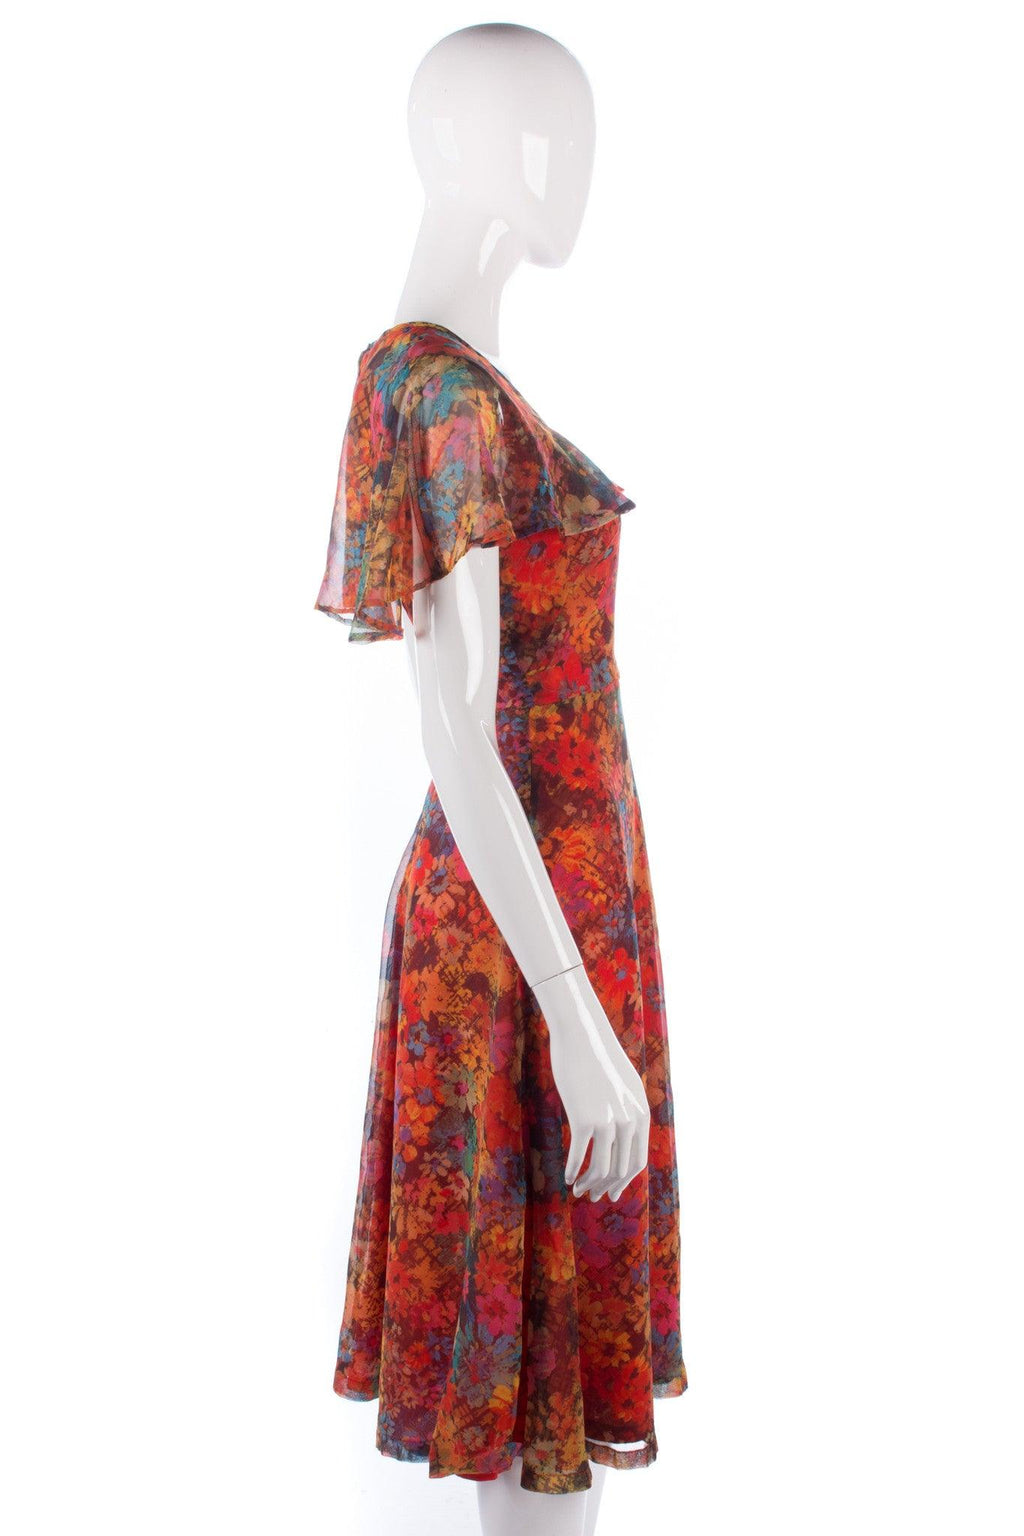 Lovely floral chiffon vintage dress probably a handmade garment